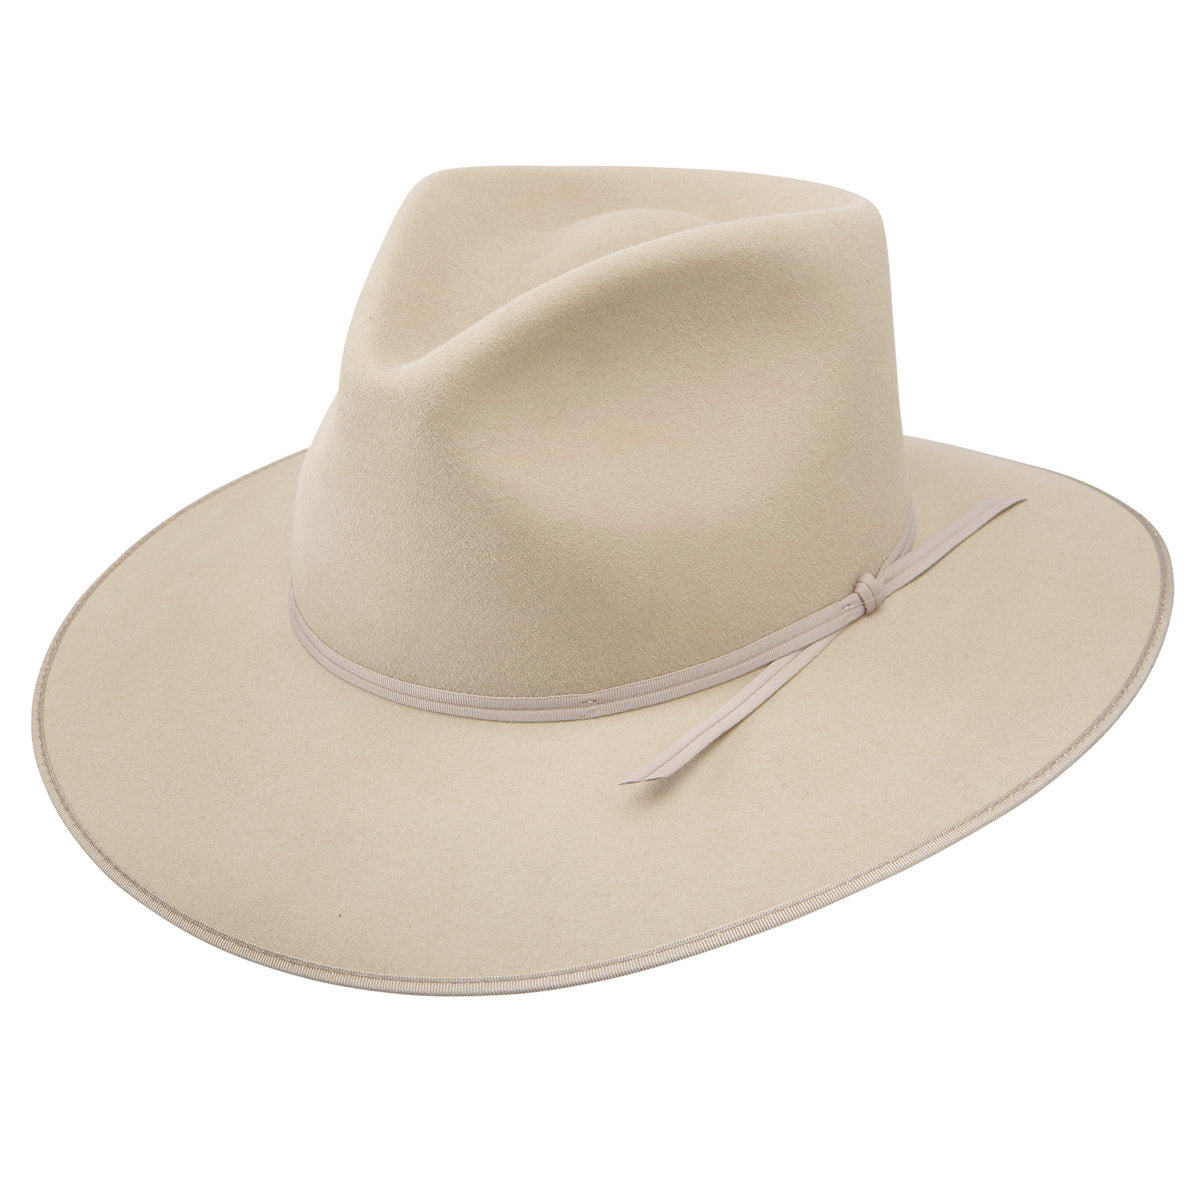 STETSON DUNE SILVER BELLY ... c39e08ae8bed